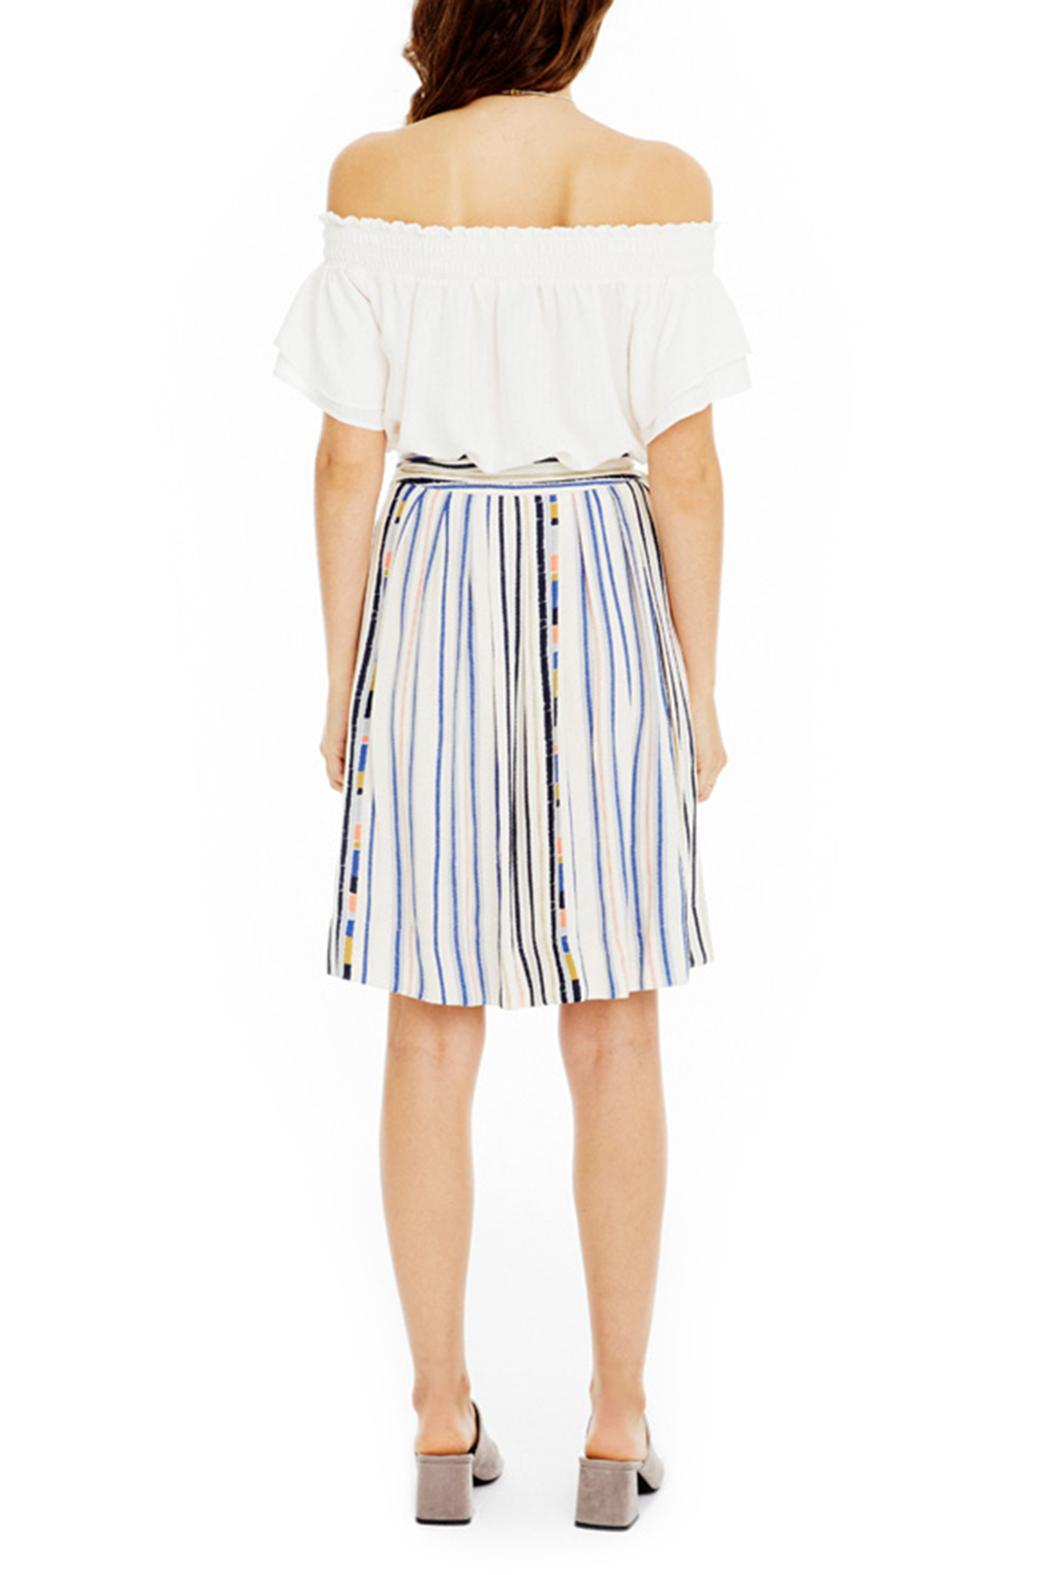 ASTR Striped Tie-Waist Skirt - Side Cropped Image